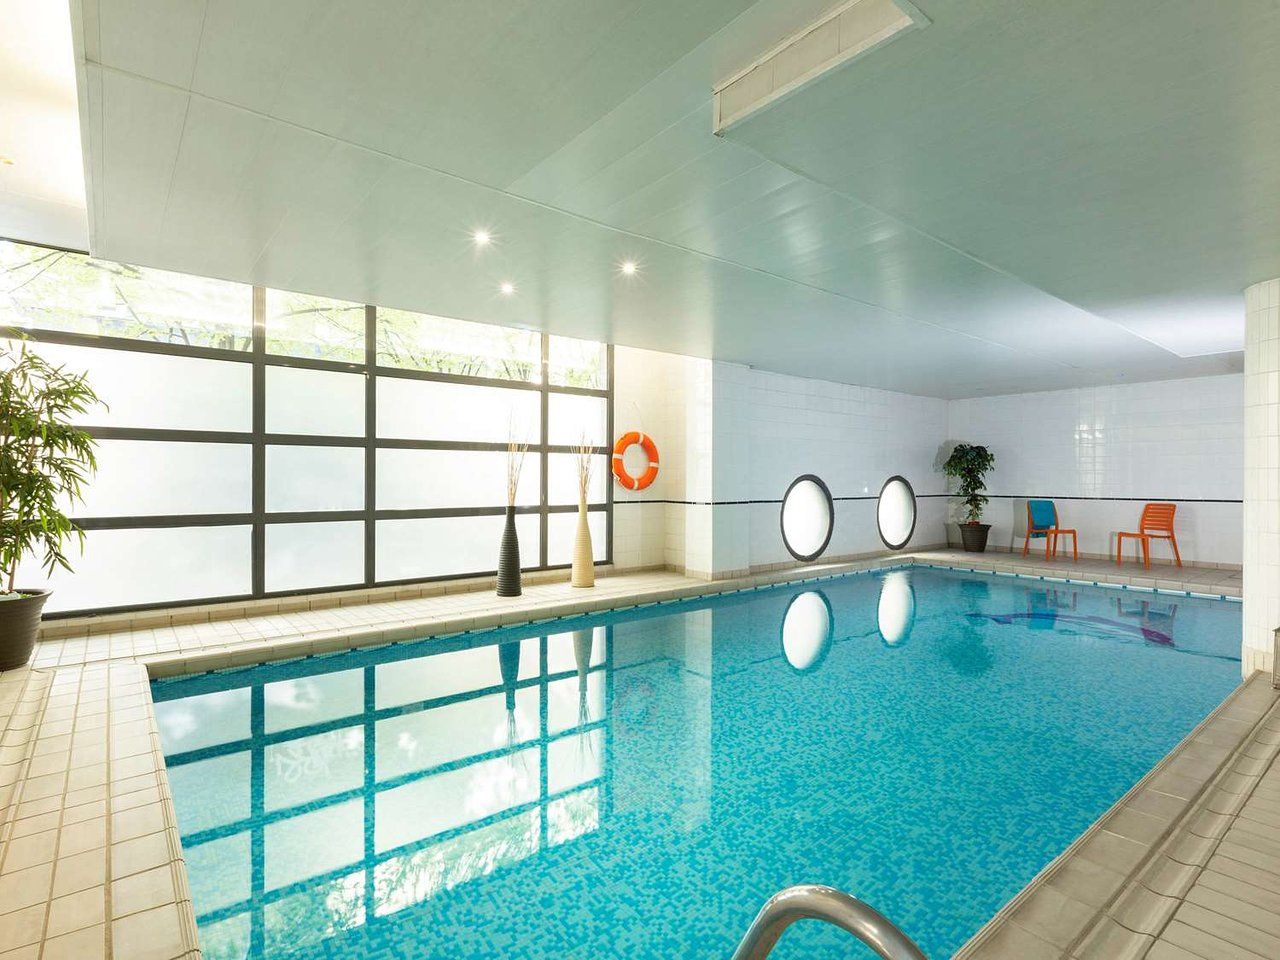 Hotel Rat On The Staff - Review Of Residhome Courbevoie La ... pour Piscine Courbevoie